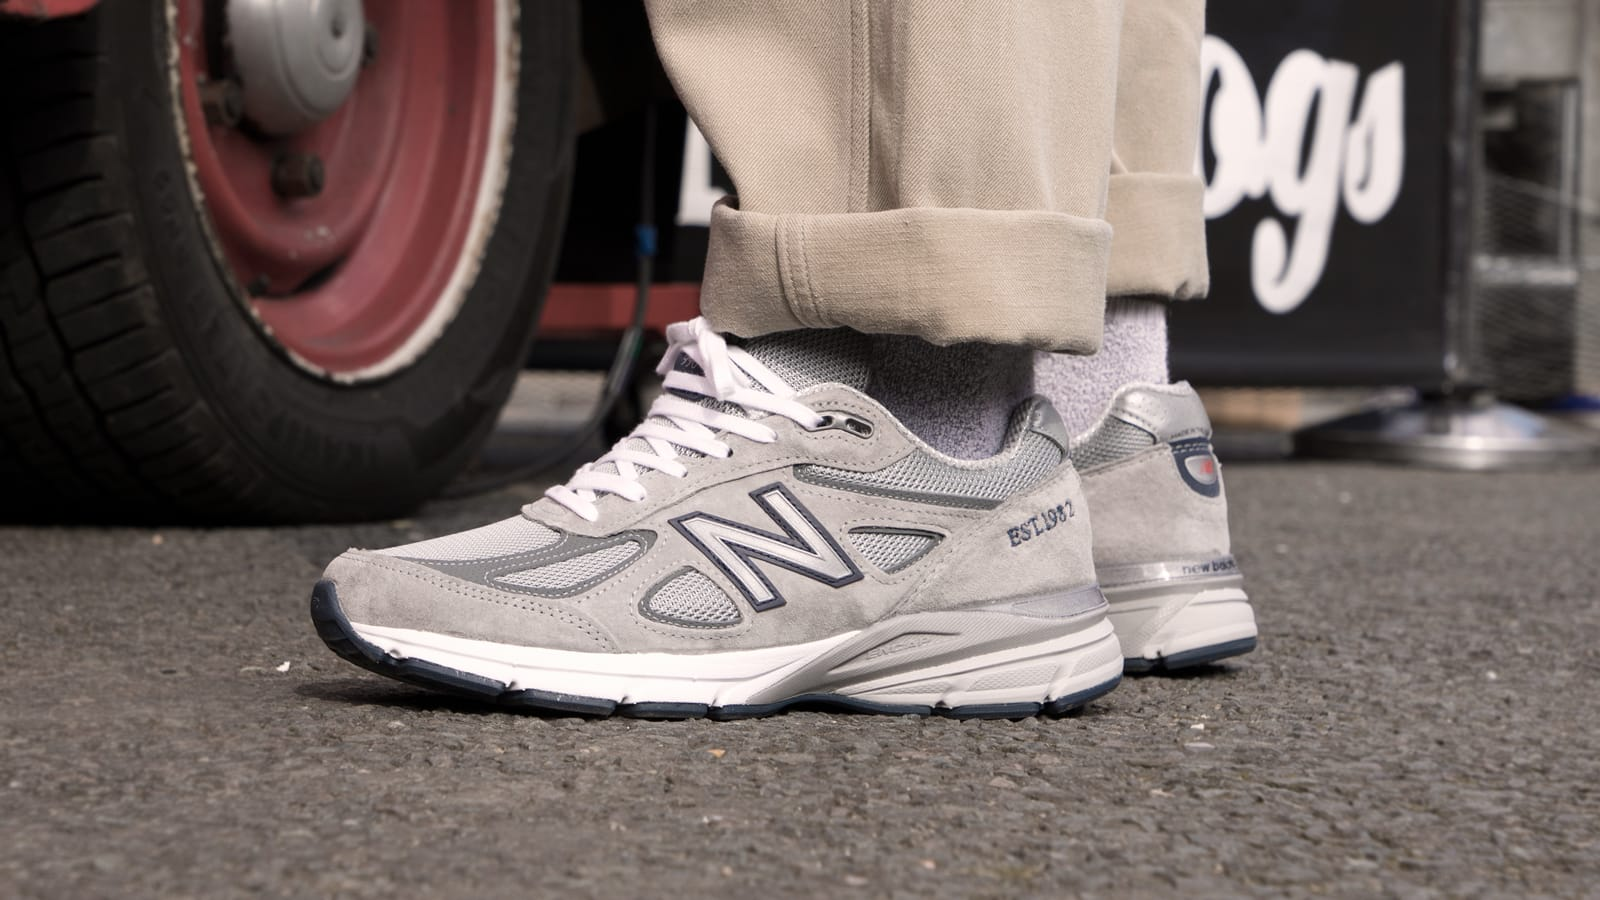 NB990_Event3